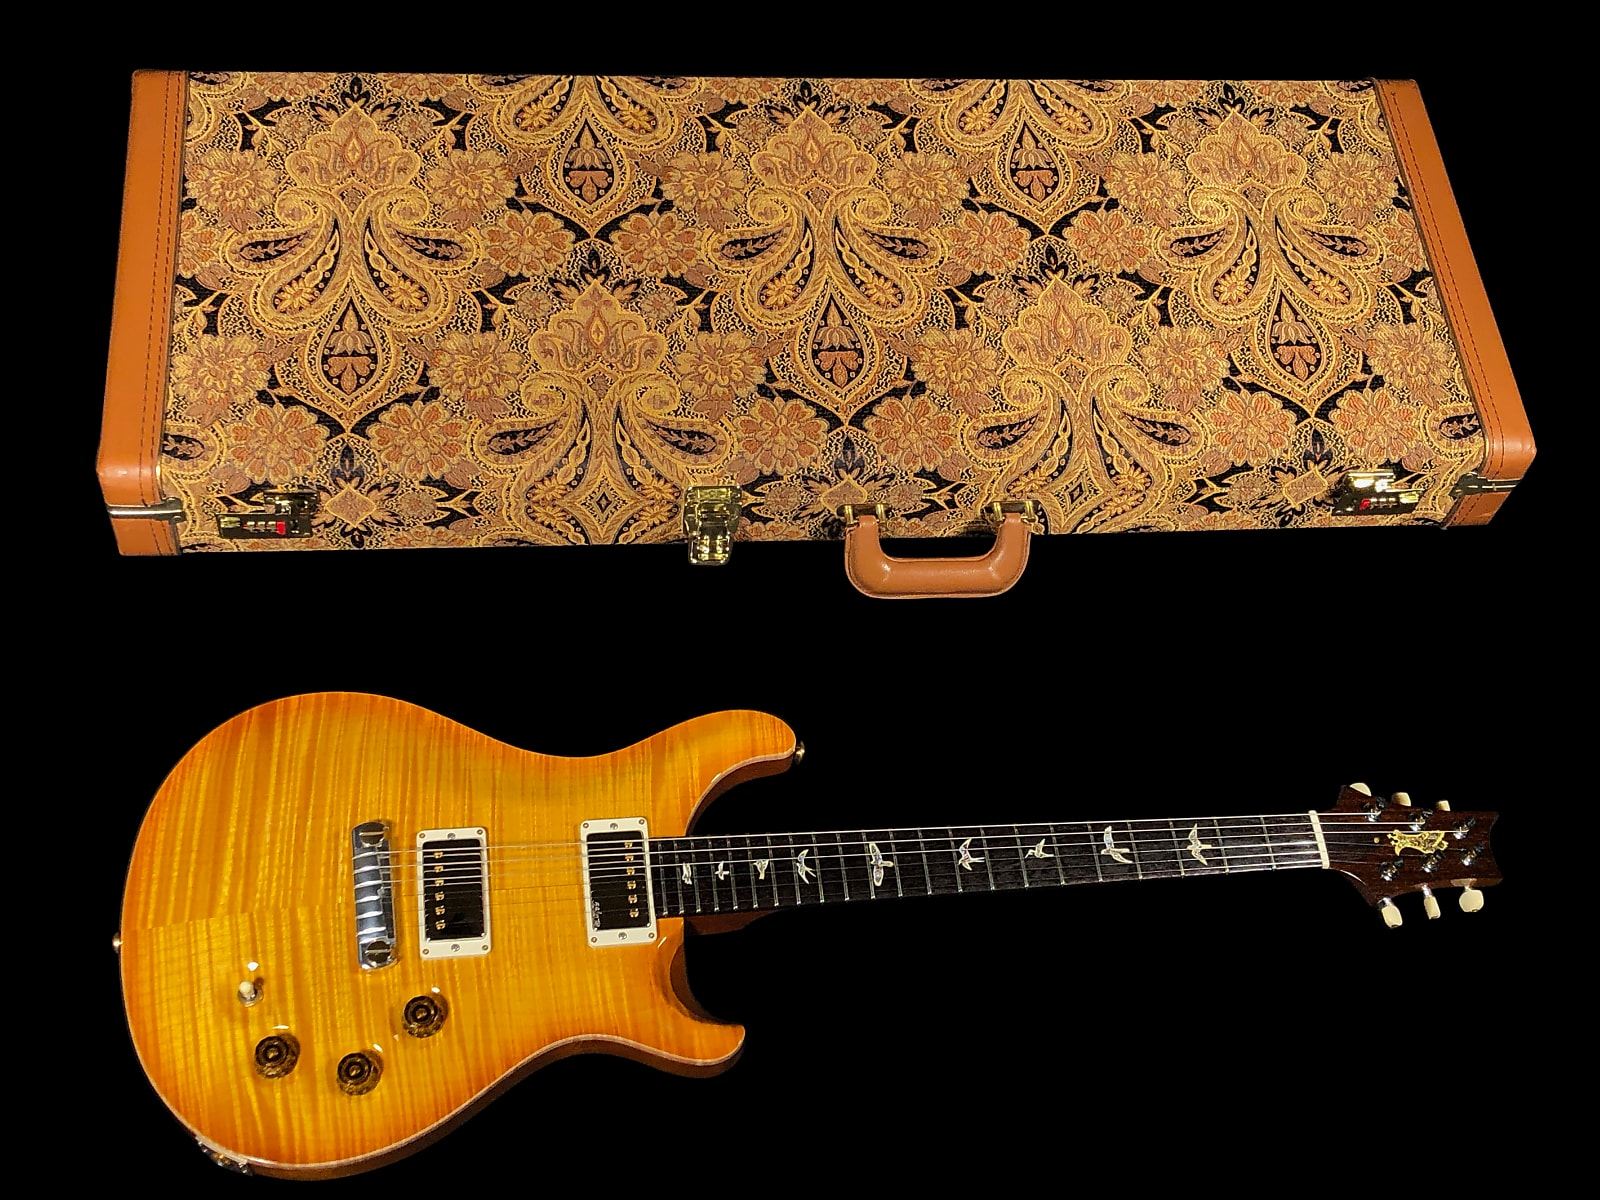 2011 Paul Reed Smith PRS DGT Private Stock Custom Built for Dave Grissom